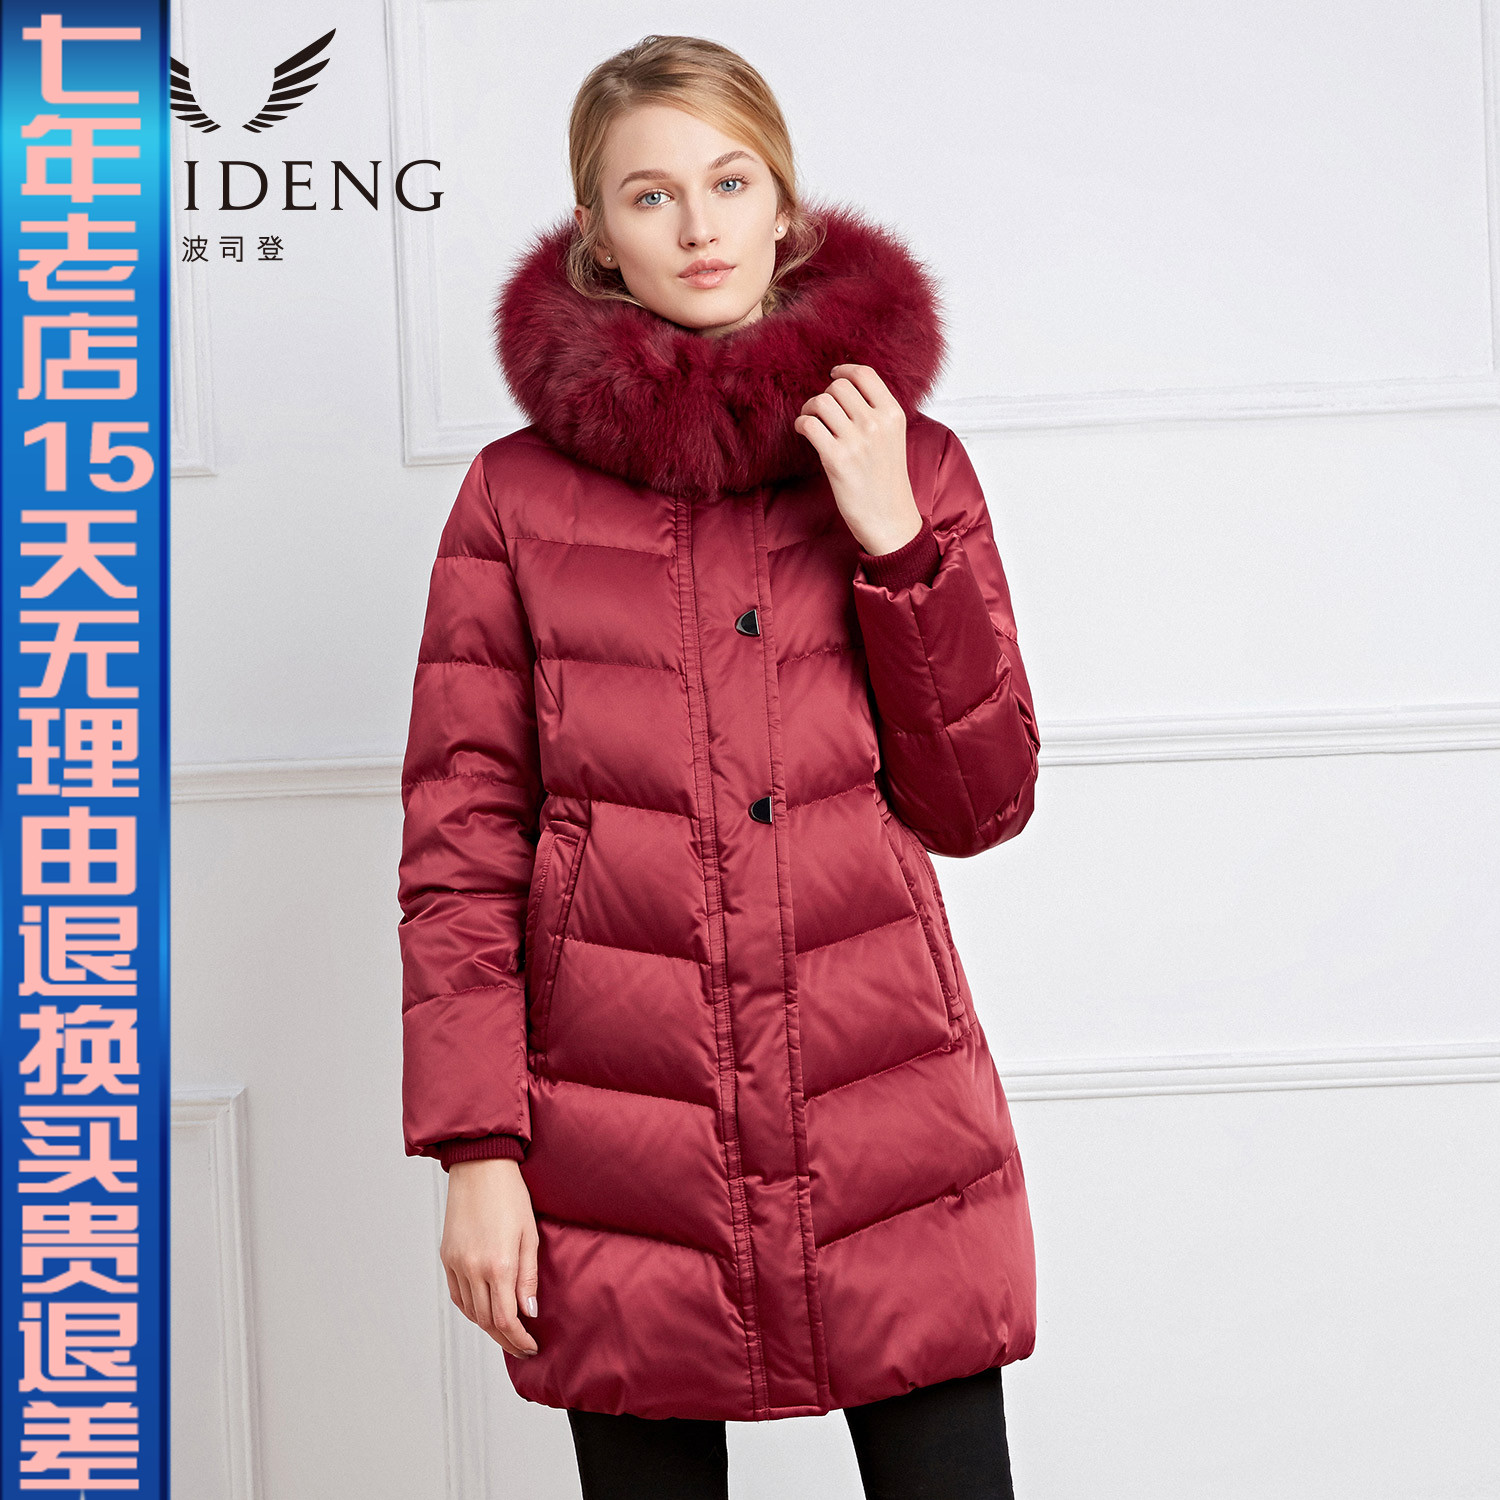 Bosideng 2016 new add fertilizer increased in the long section of the female elderly mother dress code jacket B1601348B